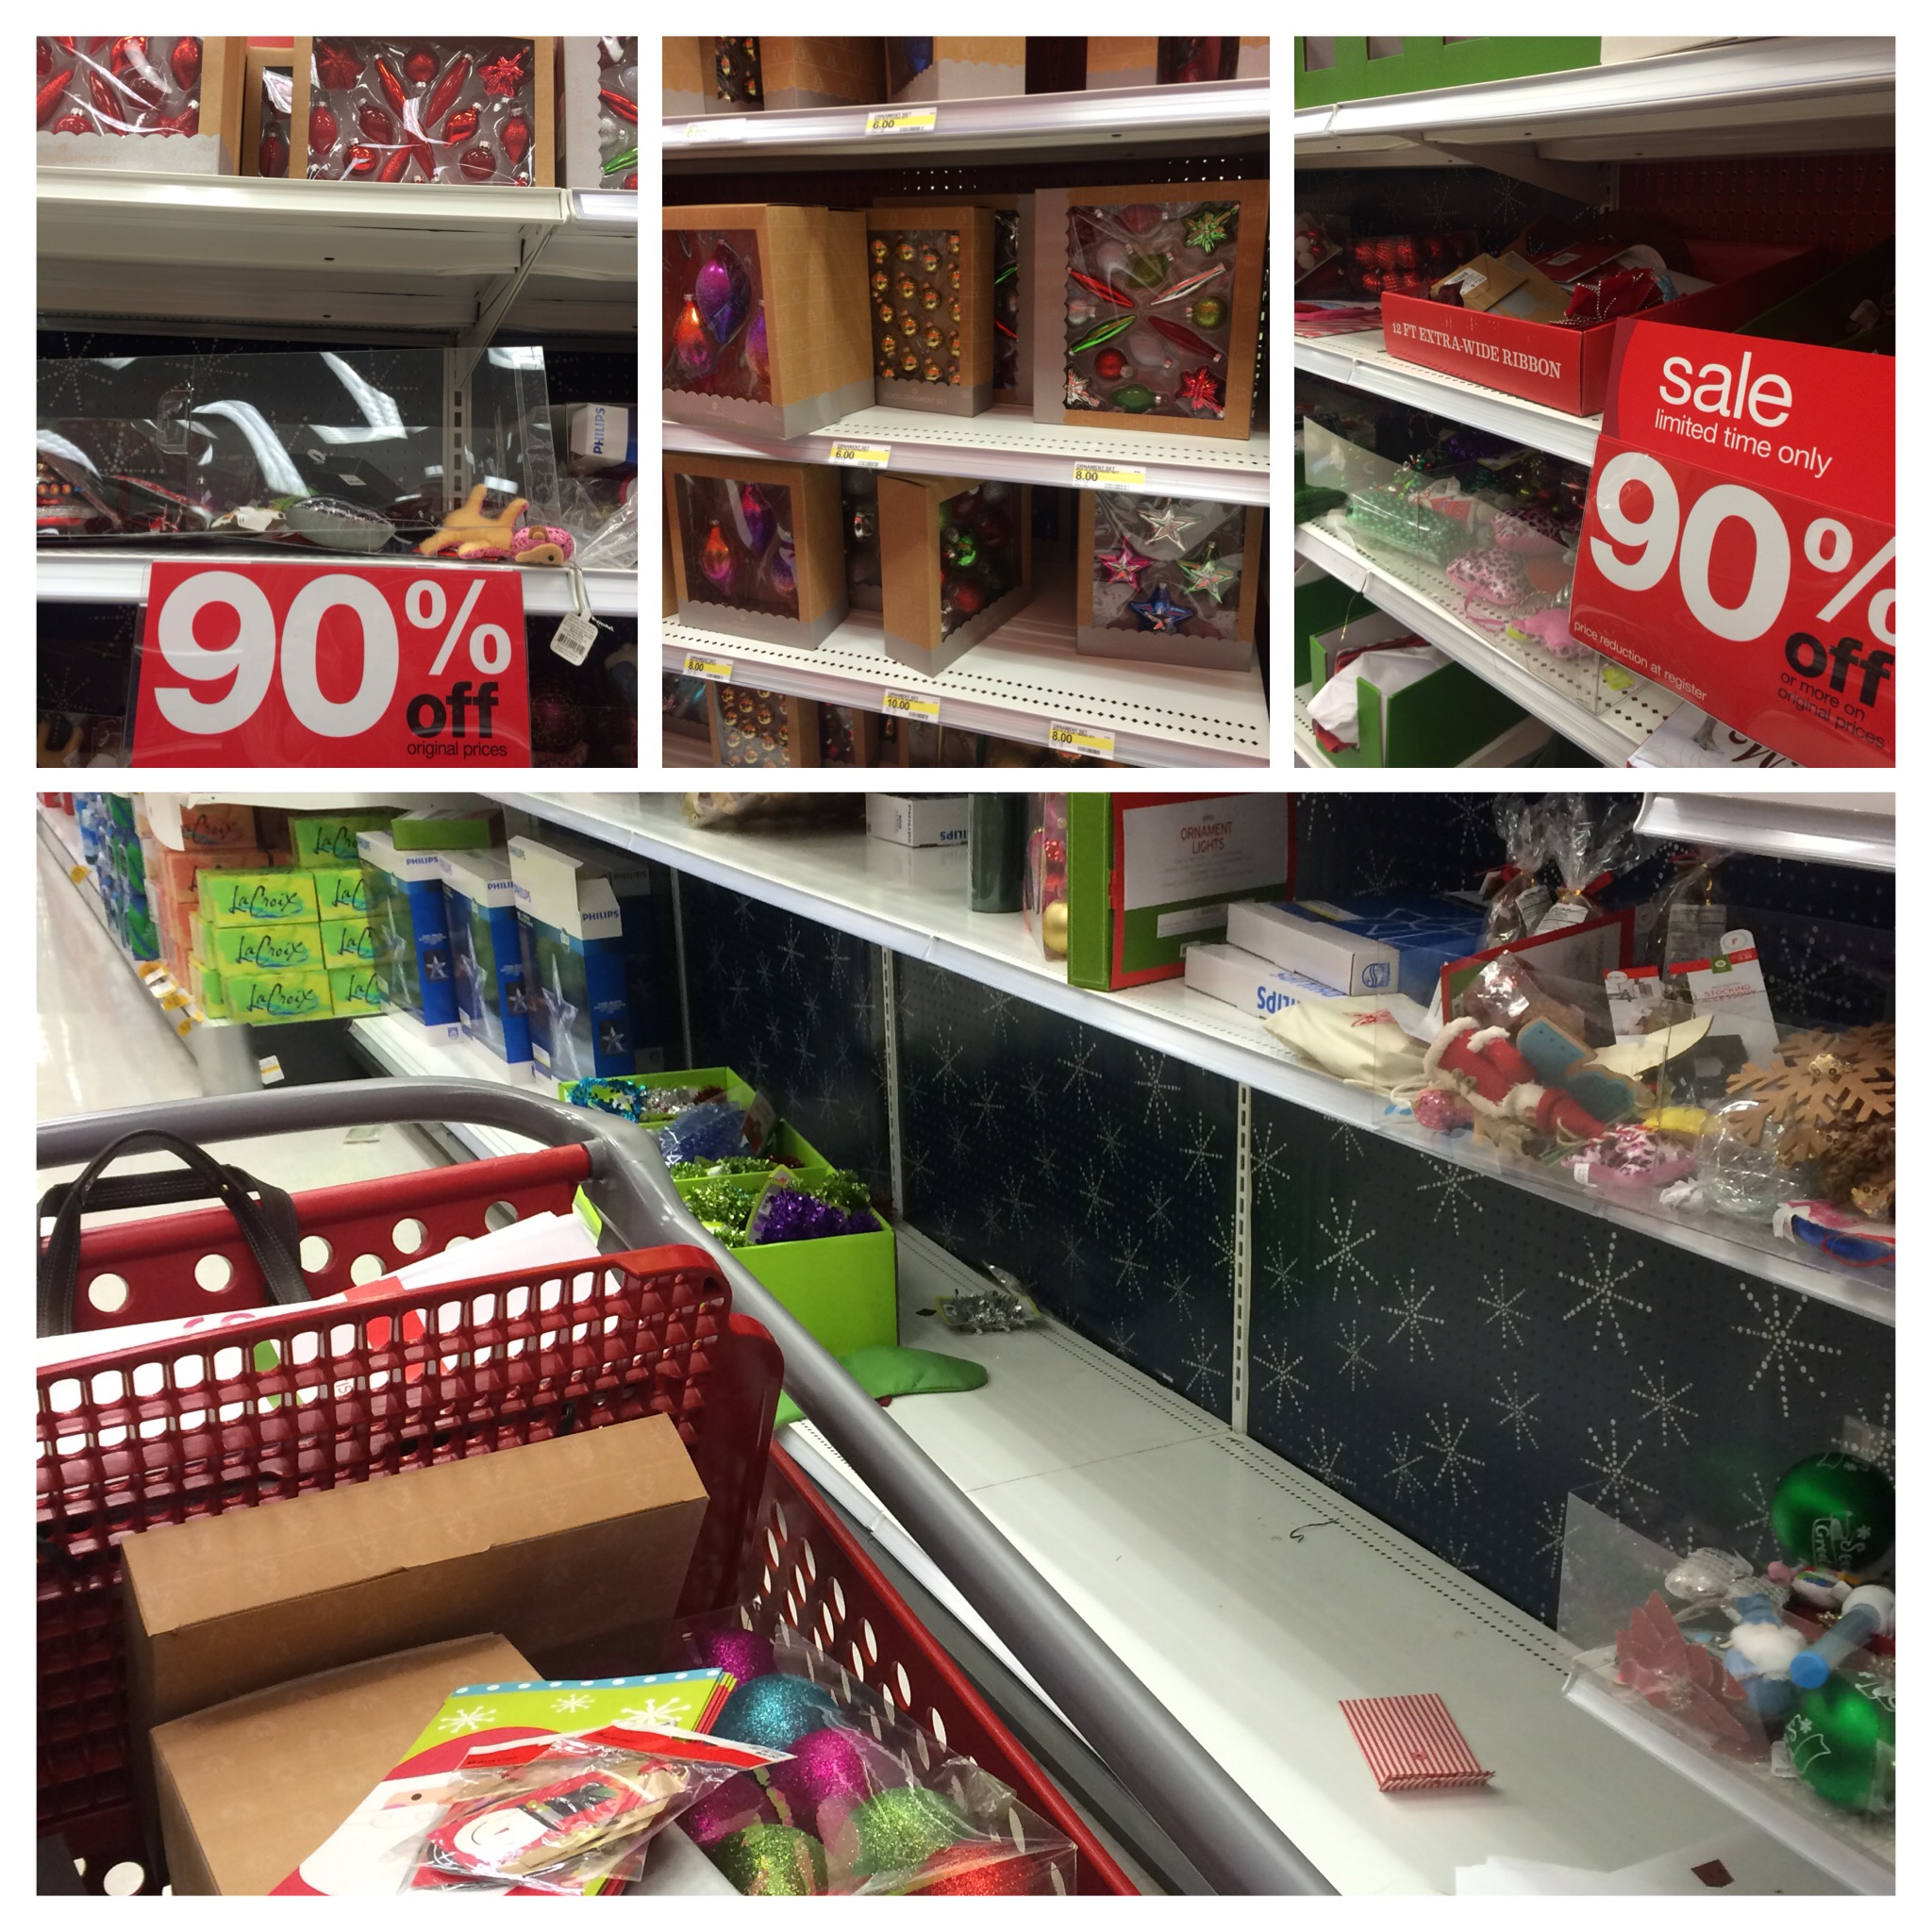 90 off christmas clearance at target including 70 off christmas candy fun - Target Christmas Clearance Schedule